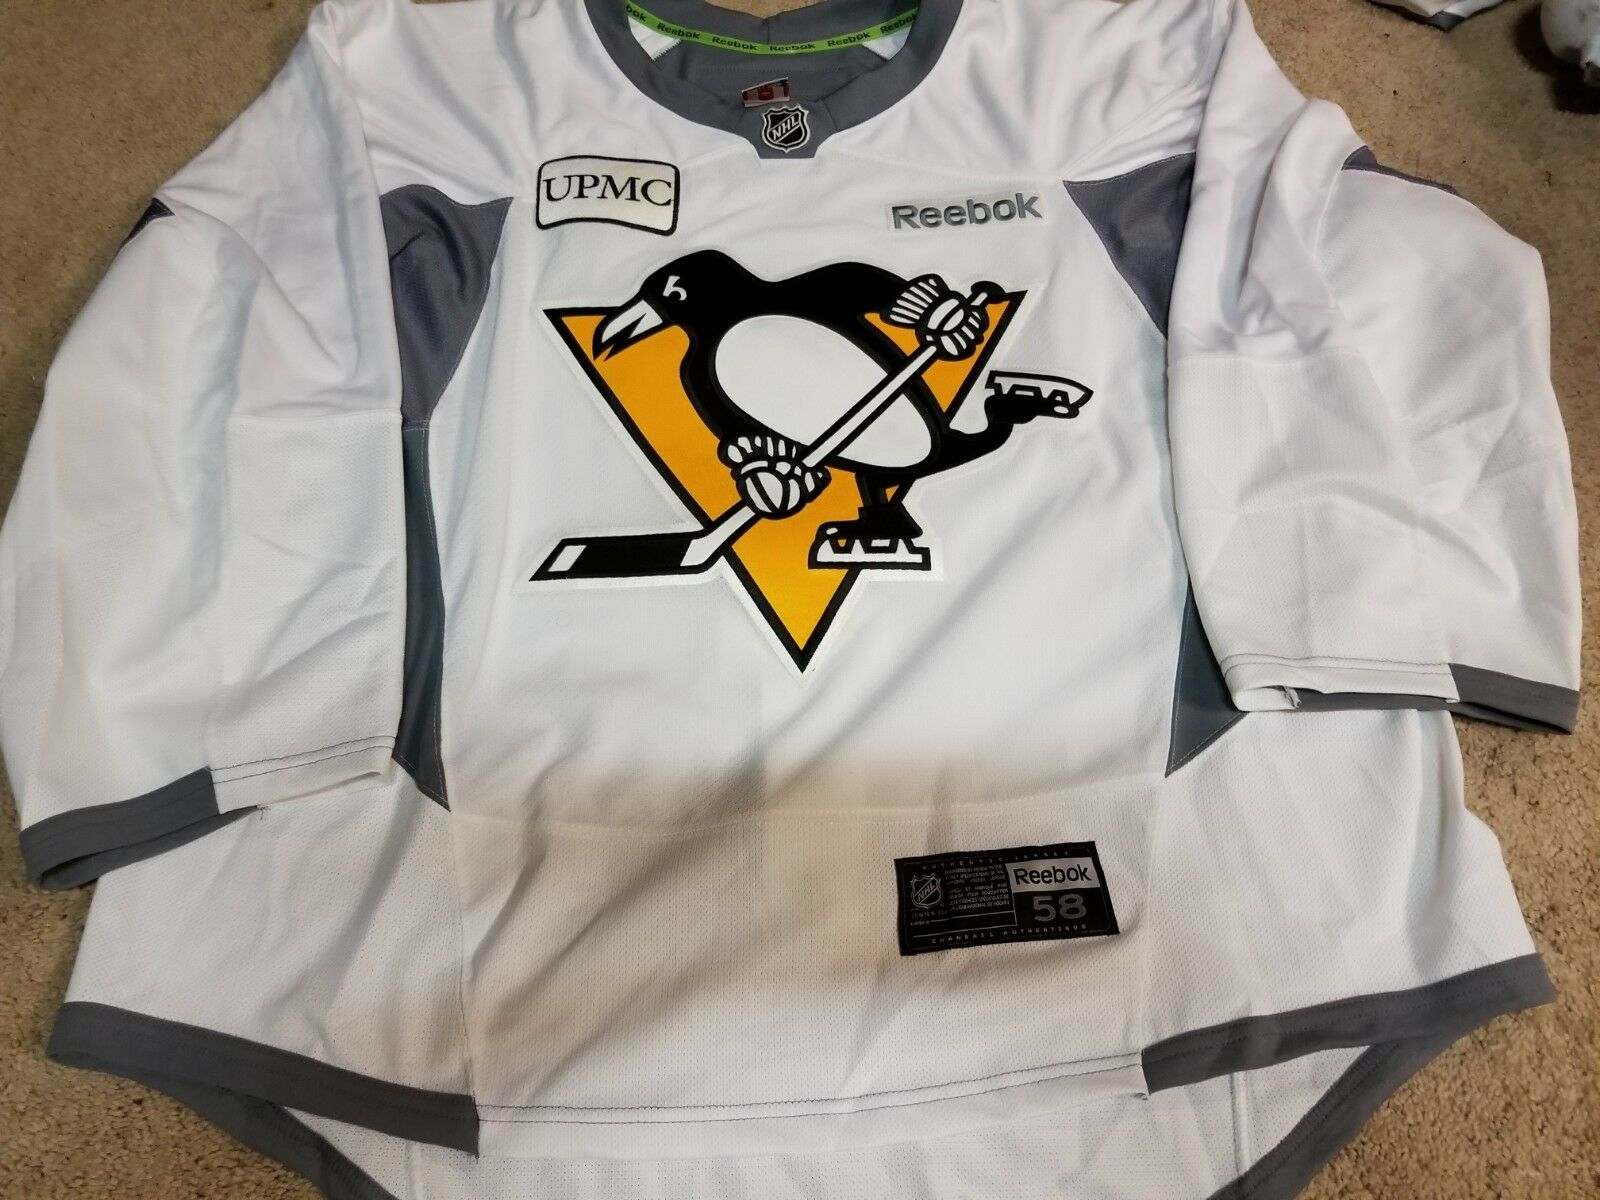 PITTSBURGH PENGUINS Goalie NEW White Yellow Game Issued Practice Pro Jersey 58